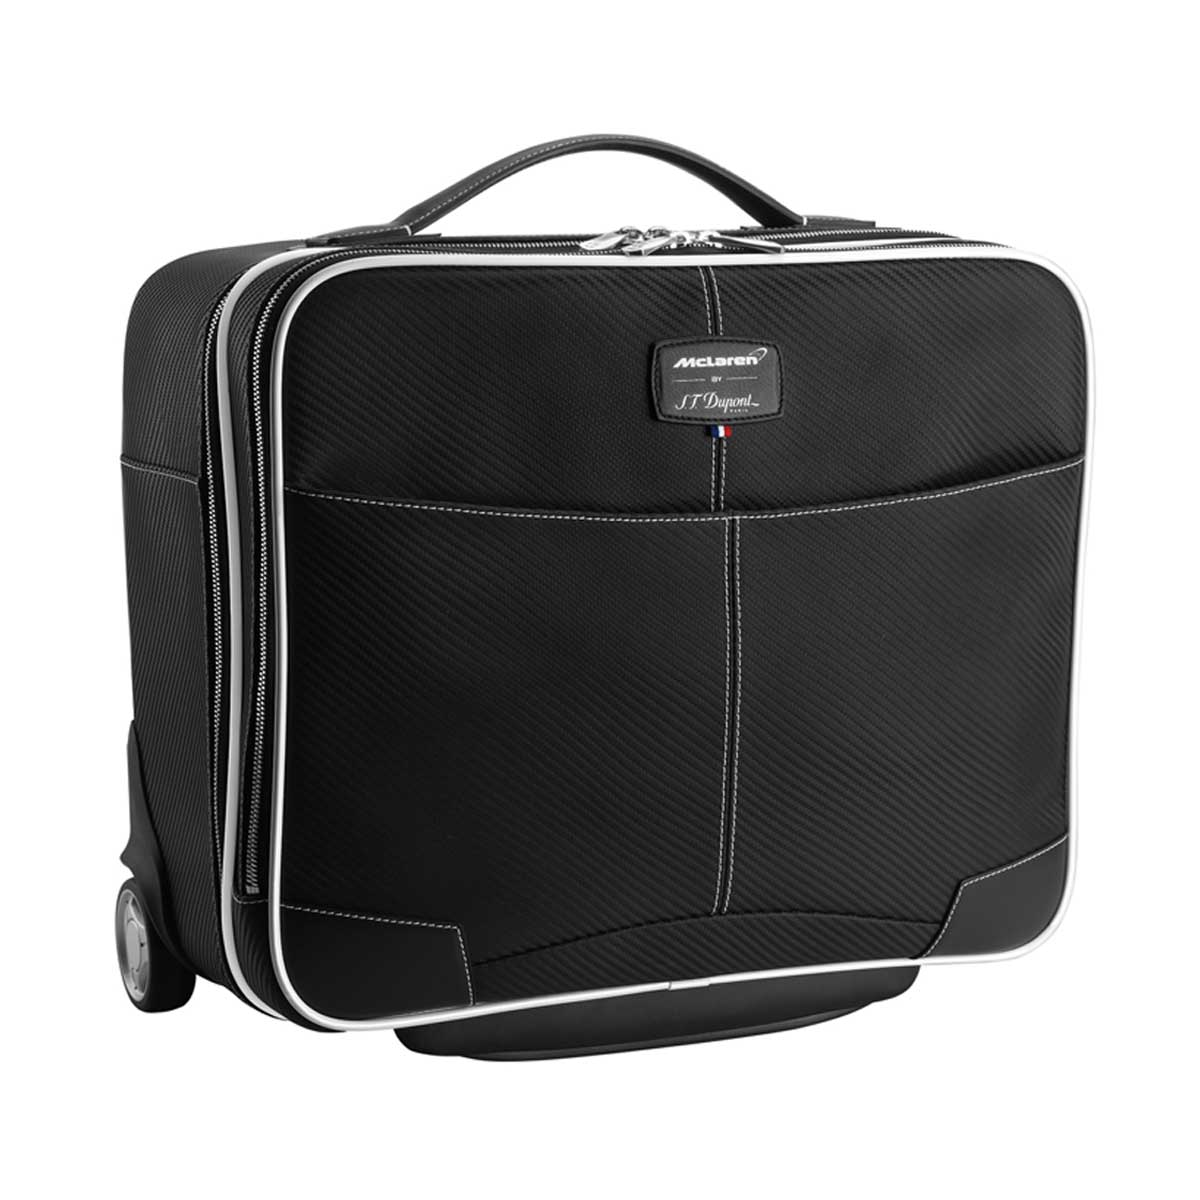 ST Dupont McLaren Wheeled Laptop Bag - Carbon Leather - Limited Edition